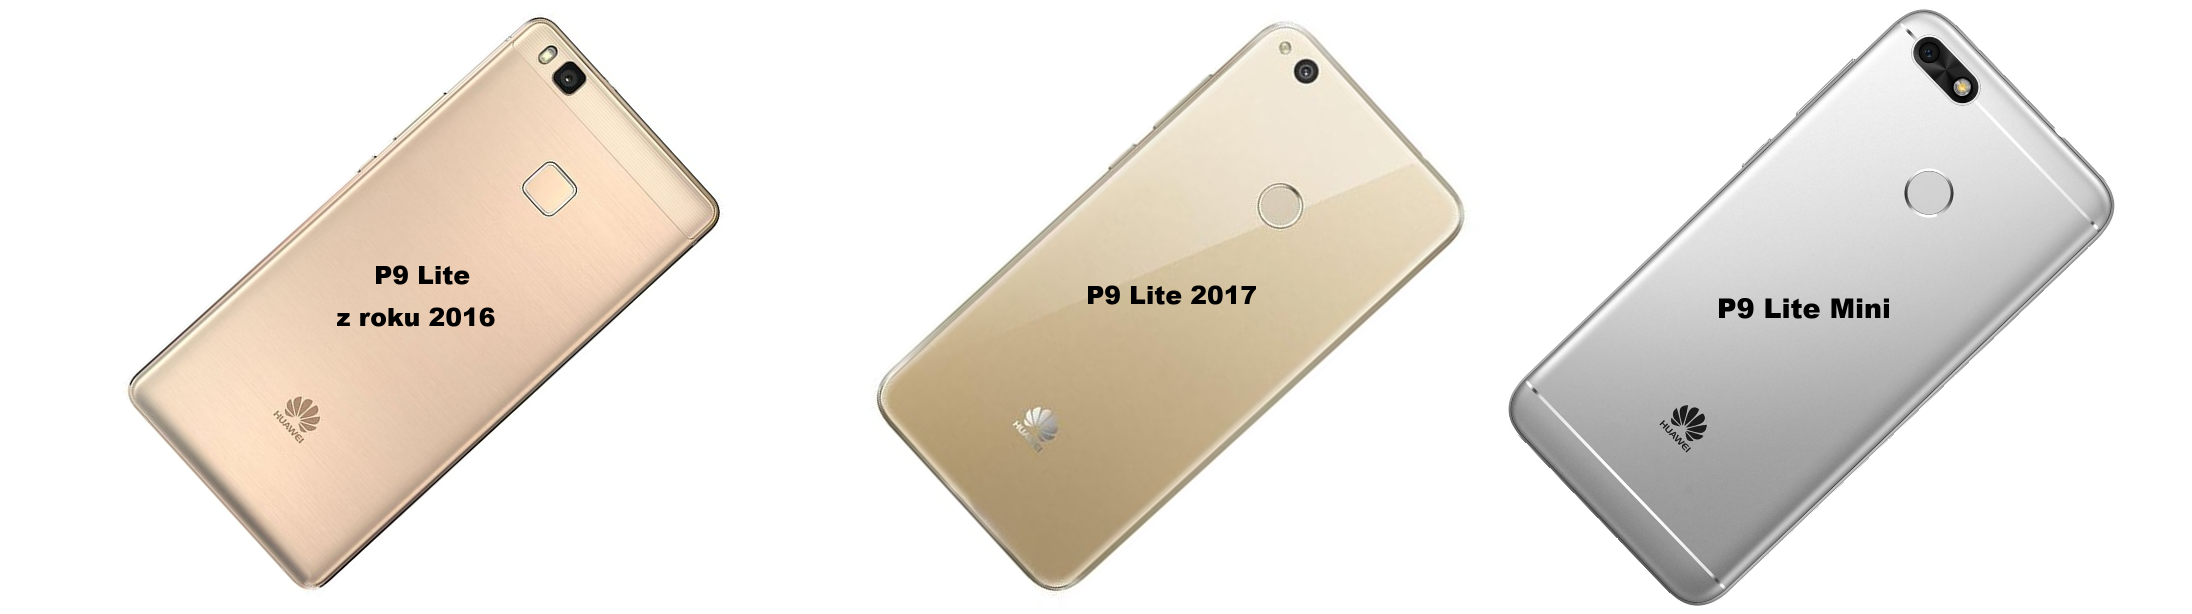 Rozdíly Huawei P9 Lite